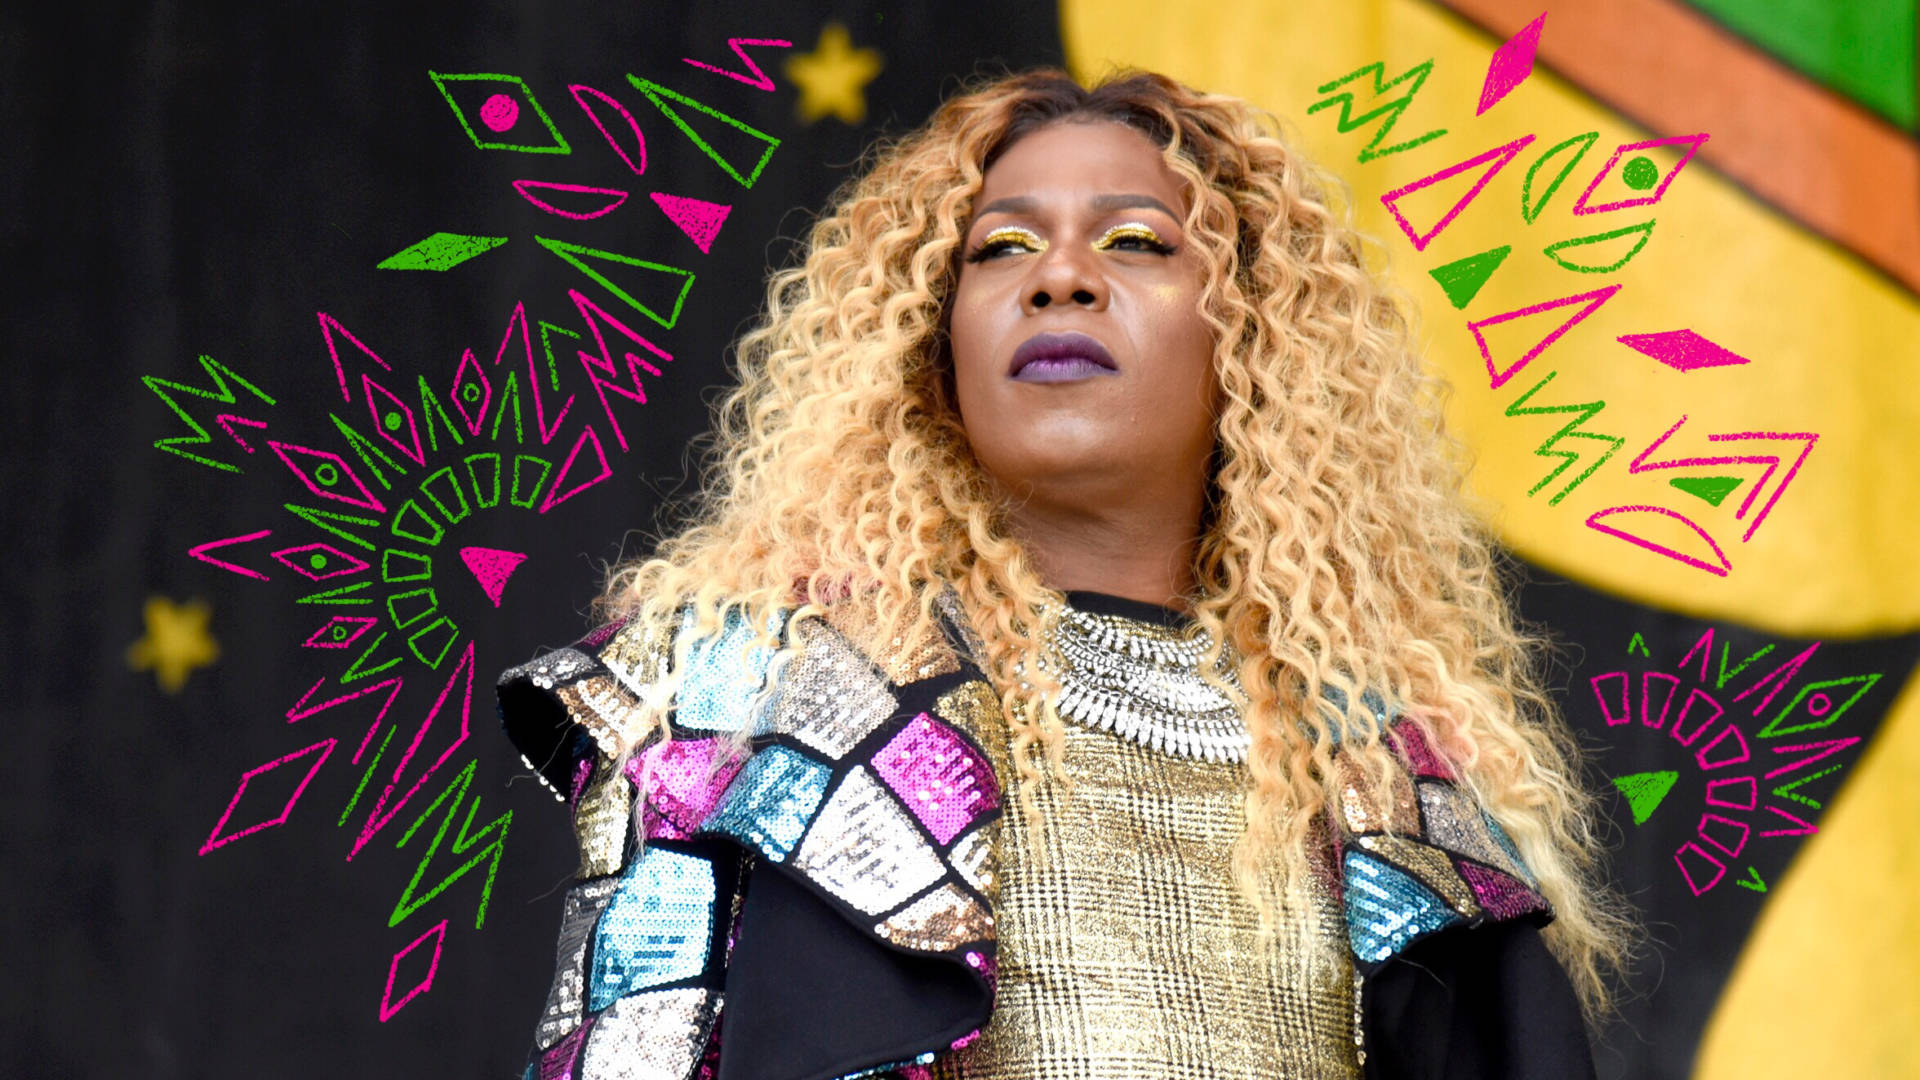 Big Freedia performs during the 2018 New Orleans Jazz & Heritage Festival in New Orleans.